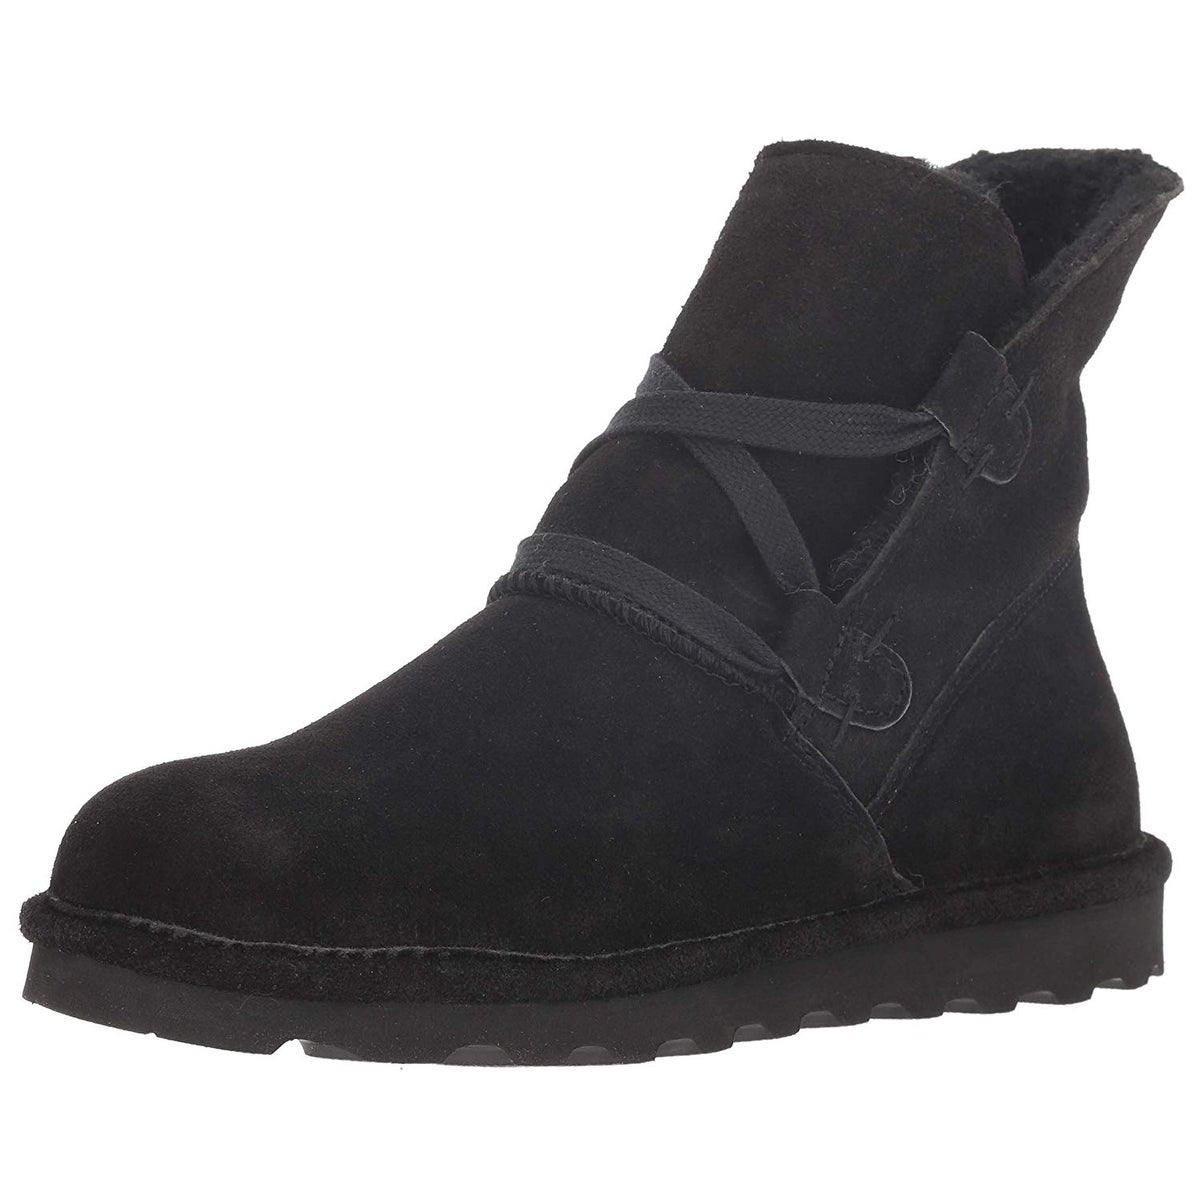 10bdd35633a16 Snow Boots Women's Shoes | Find Great Shoes Deals Shopping at Overstock